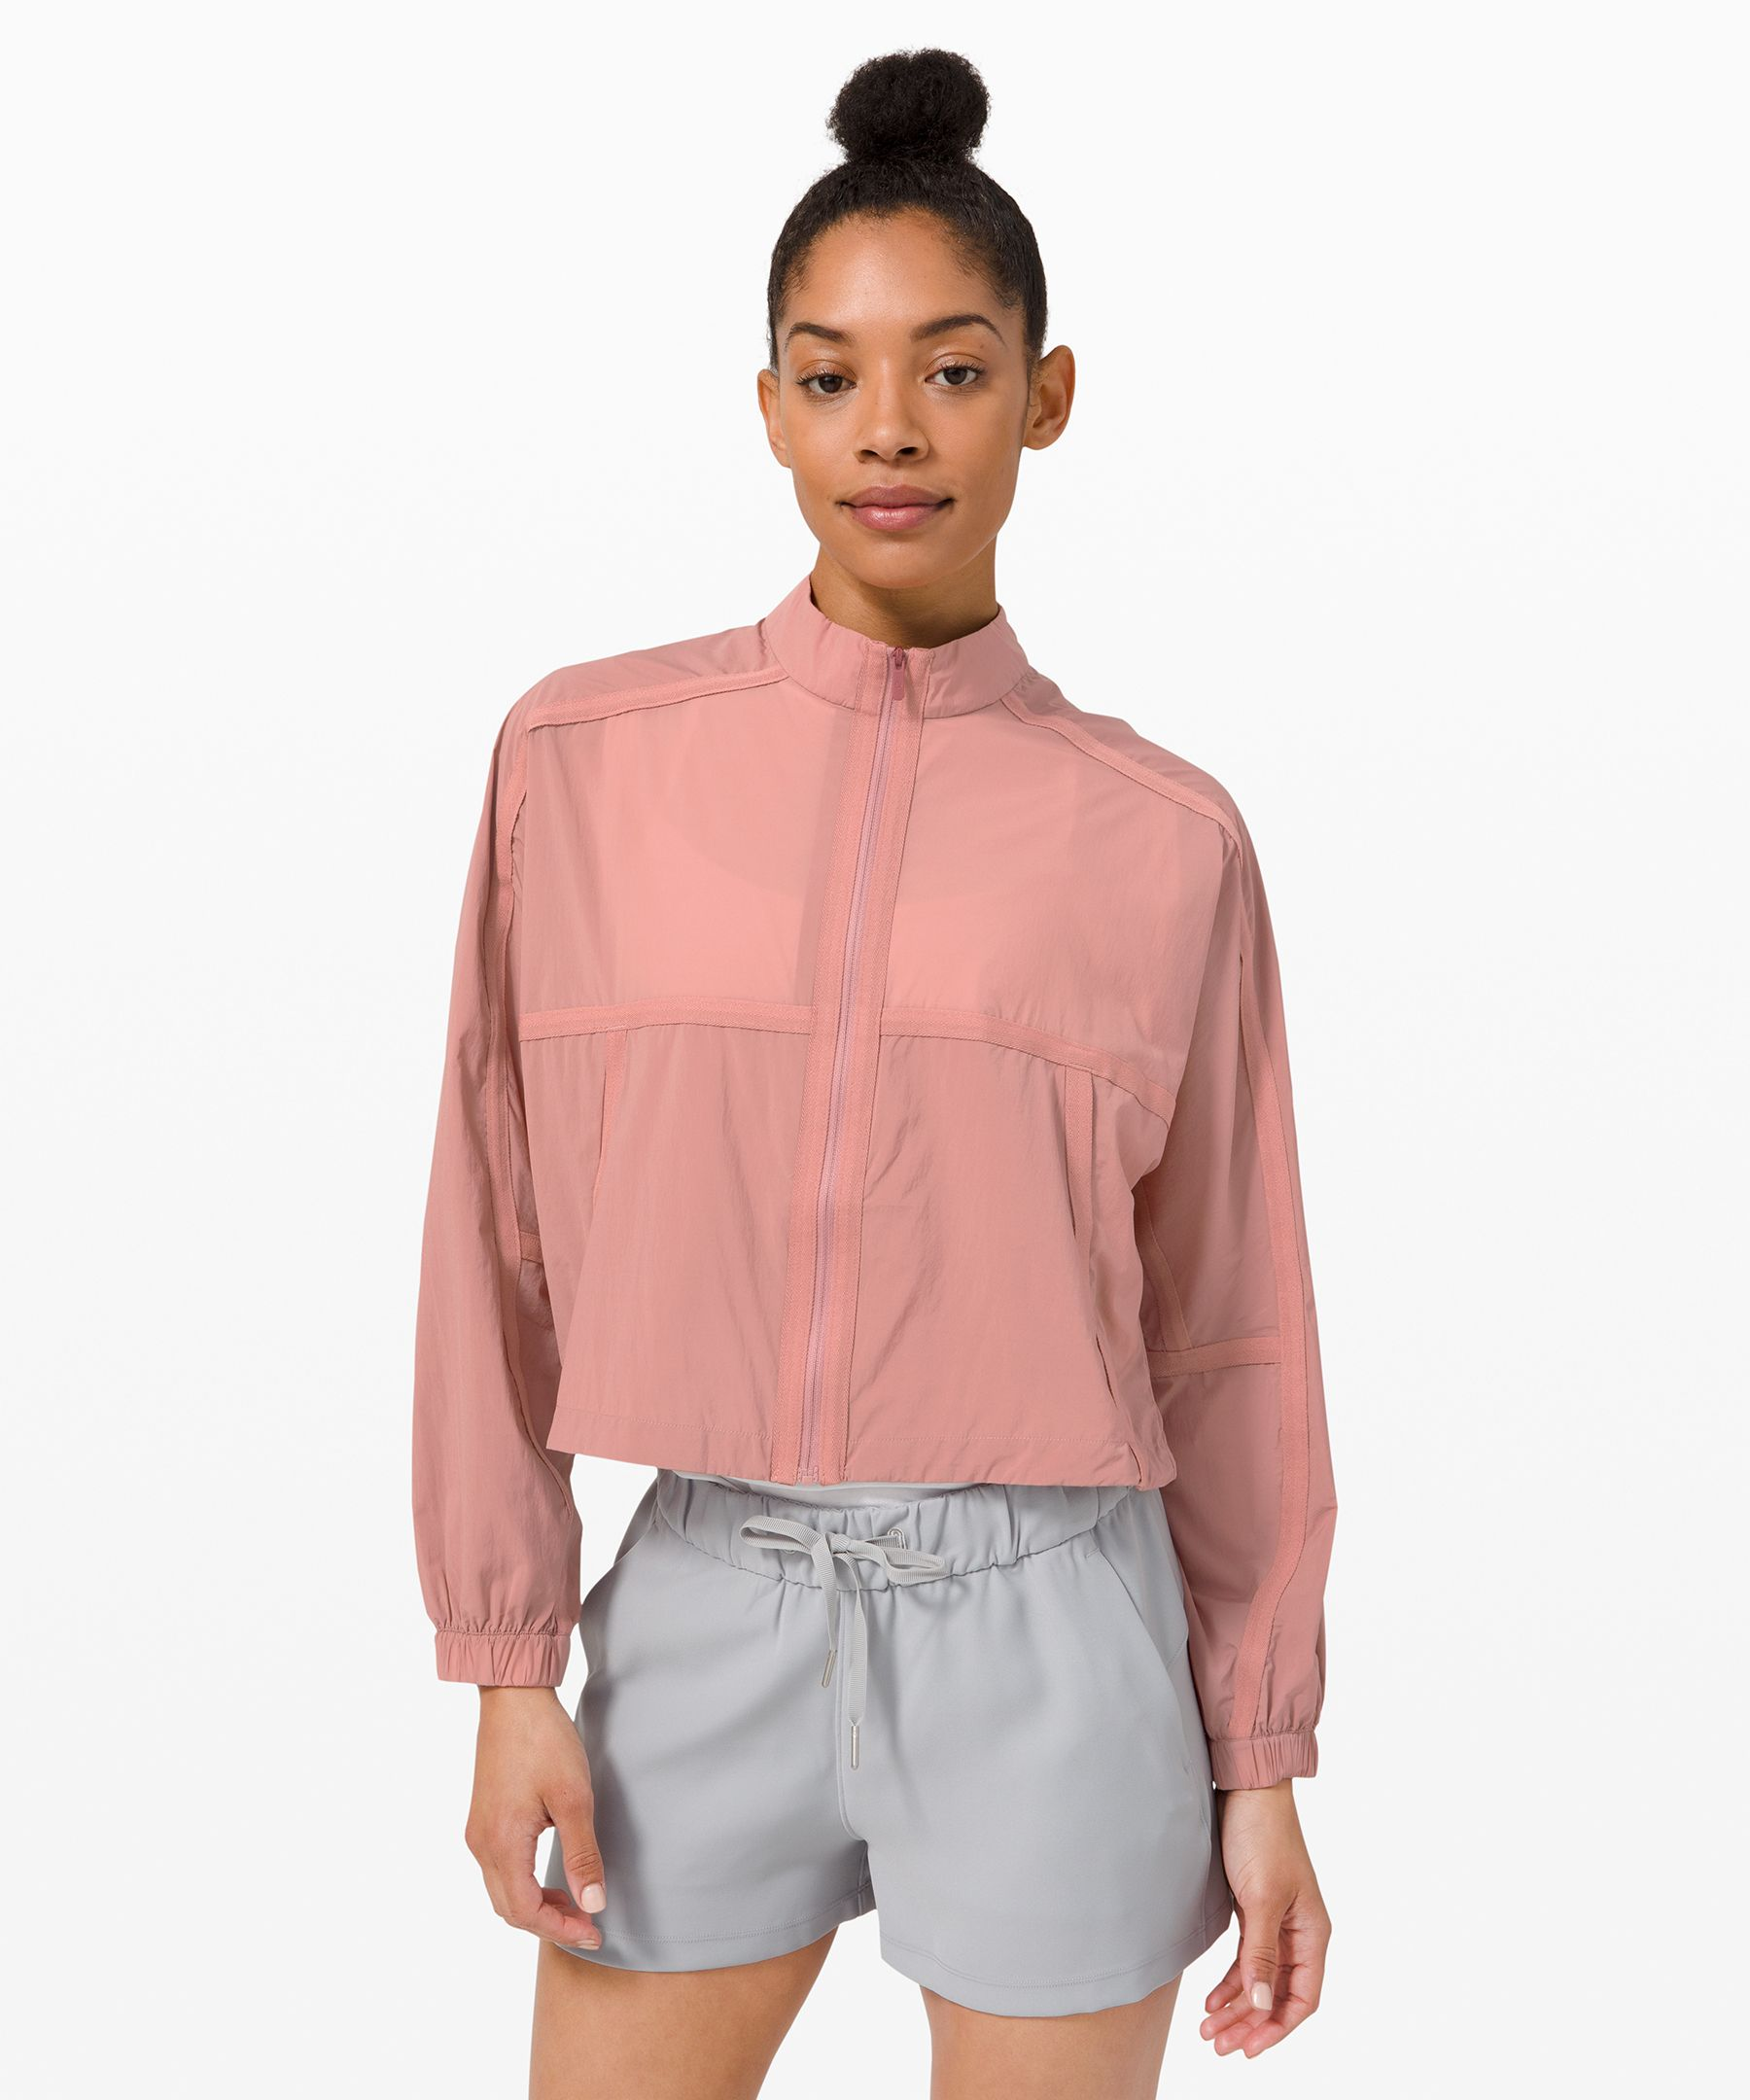 This fluid, cropped jacket  brings a soft touch to  transitional seasons. Made  with smooth, silky DWR-treated  fabric, it protects you from  light rain and feels as airy  as a spring breeze.